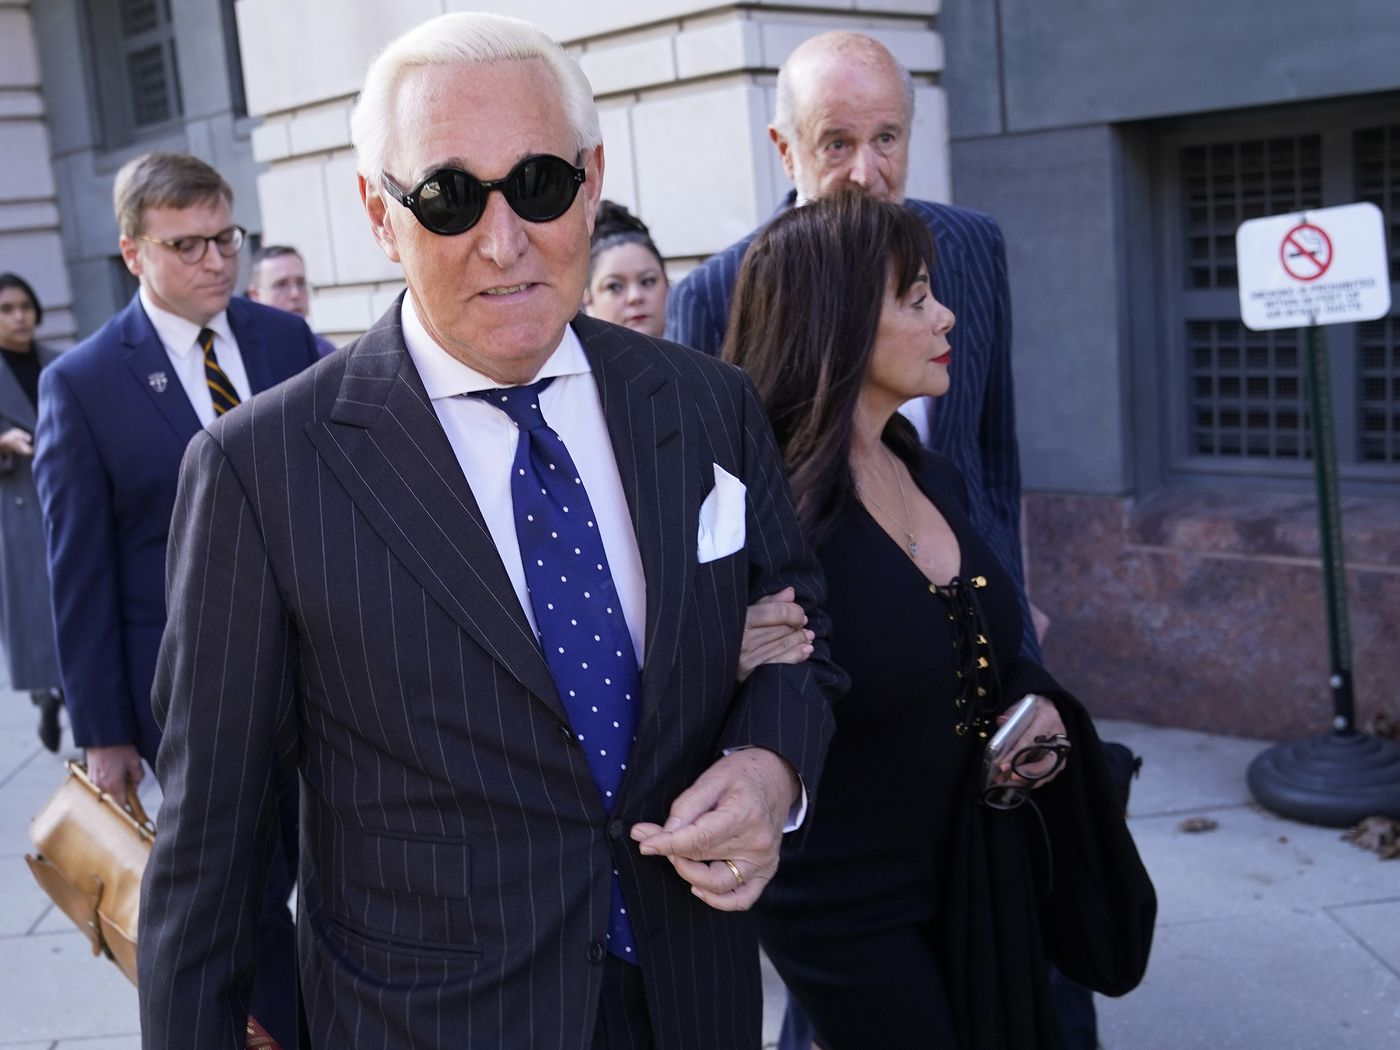 Who is roger stones